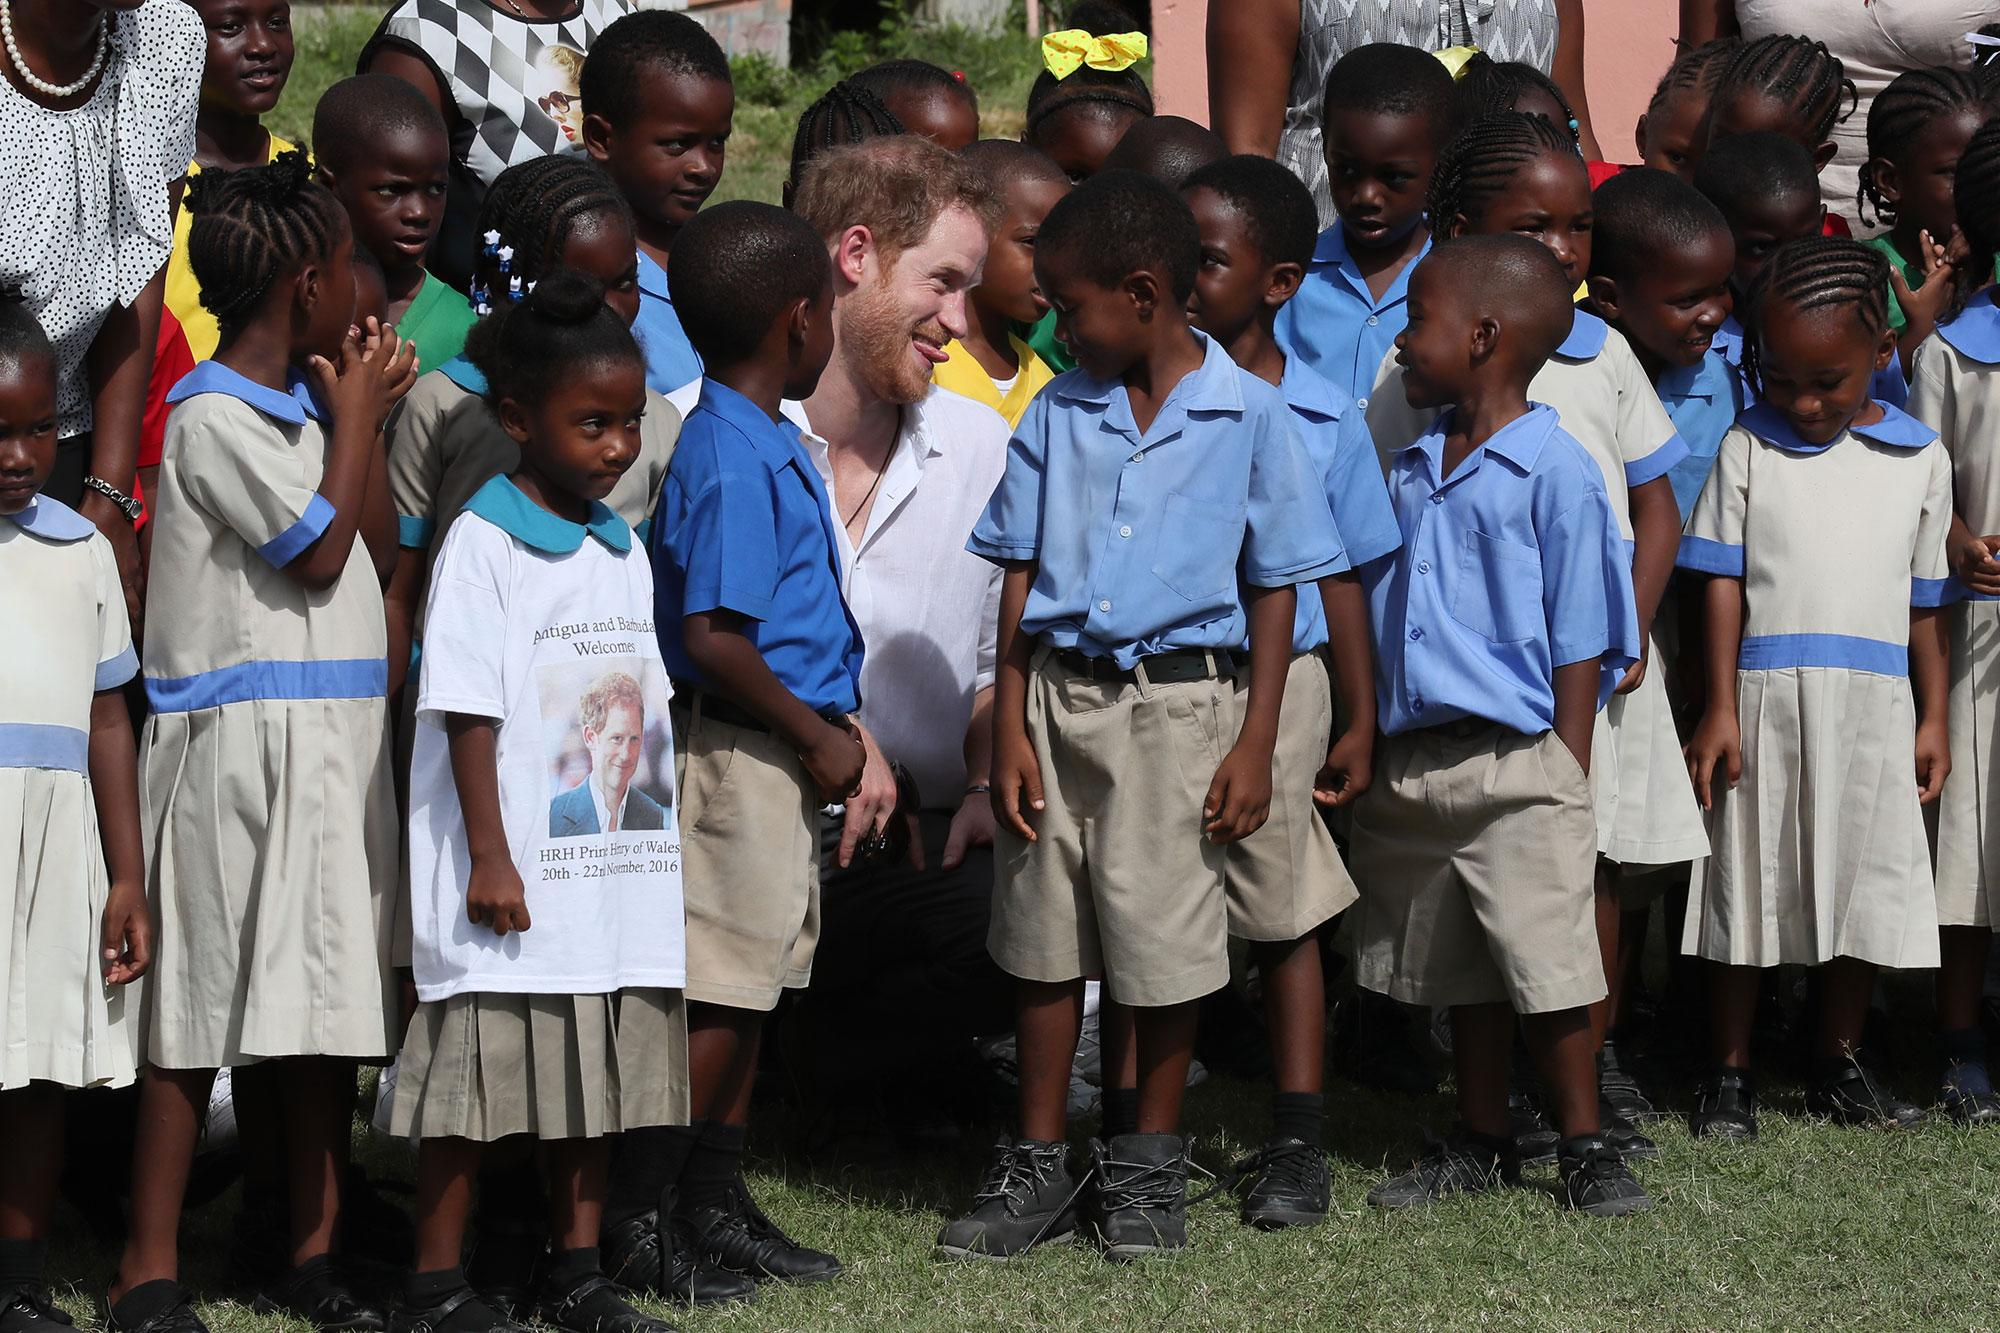 <p>Prince Harry meets school children at Holy Trinity Primary School and Nursery, as they prepare celebrations for the school's 93rd anniversary of their Founders' Day, during the third day of his tour of the Caribbean on November 22, 2016 in Barbuda, Antigua and Barbuda. (Chris Radburn – Pool/Getty Images) </p>